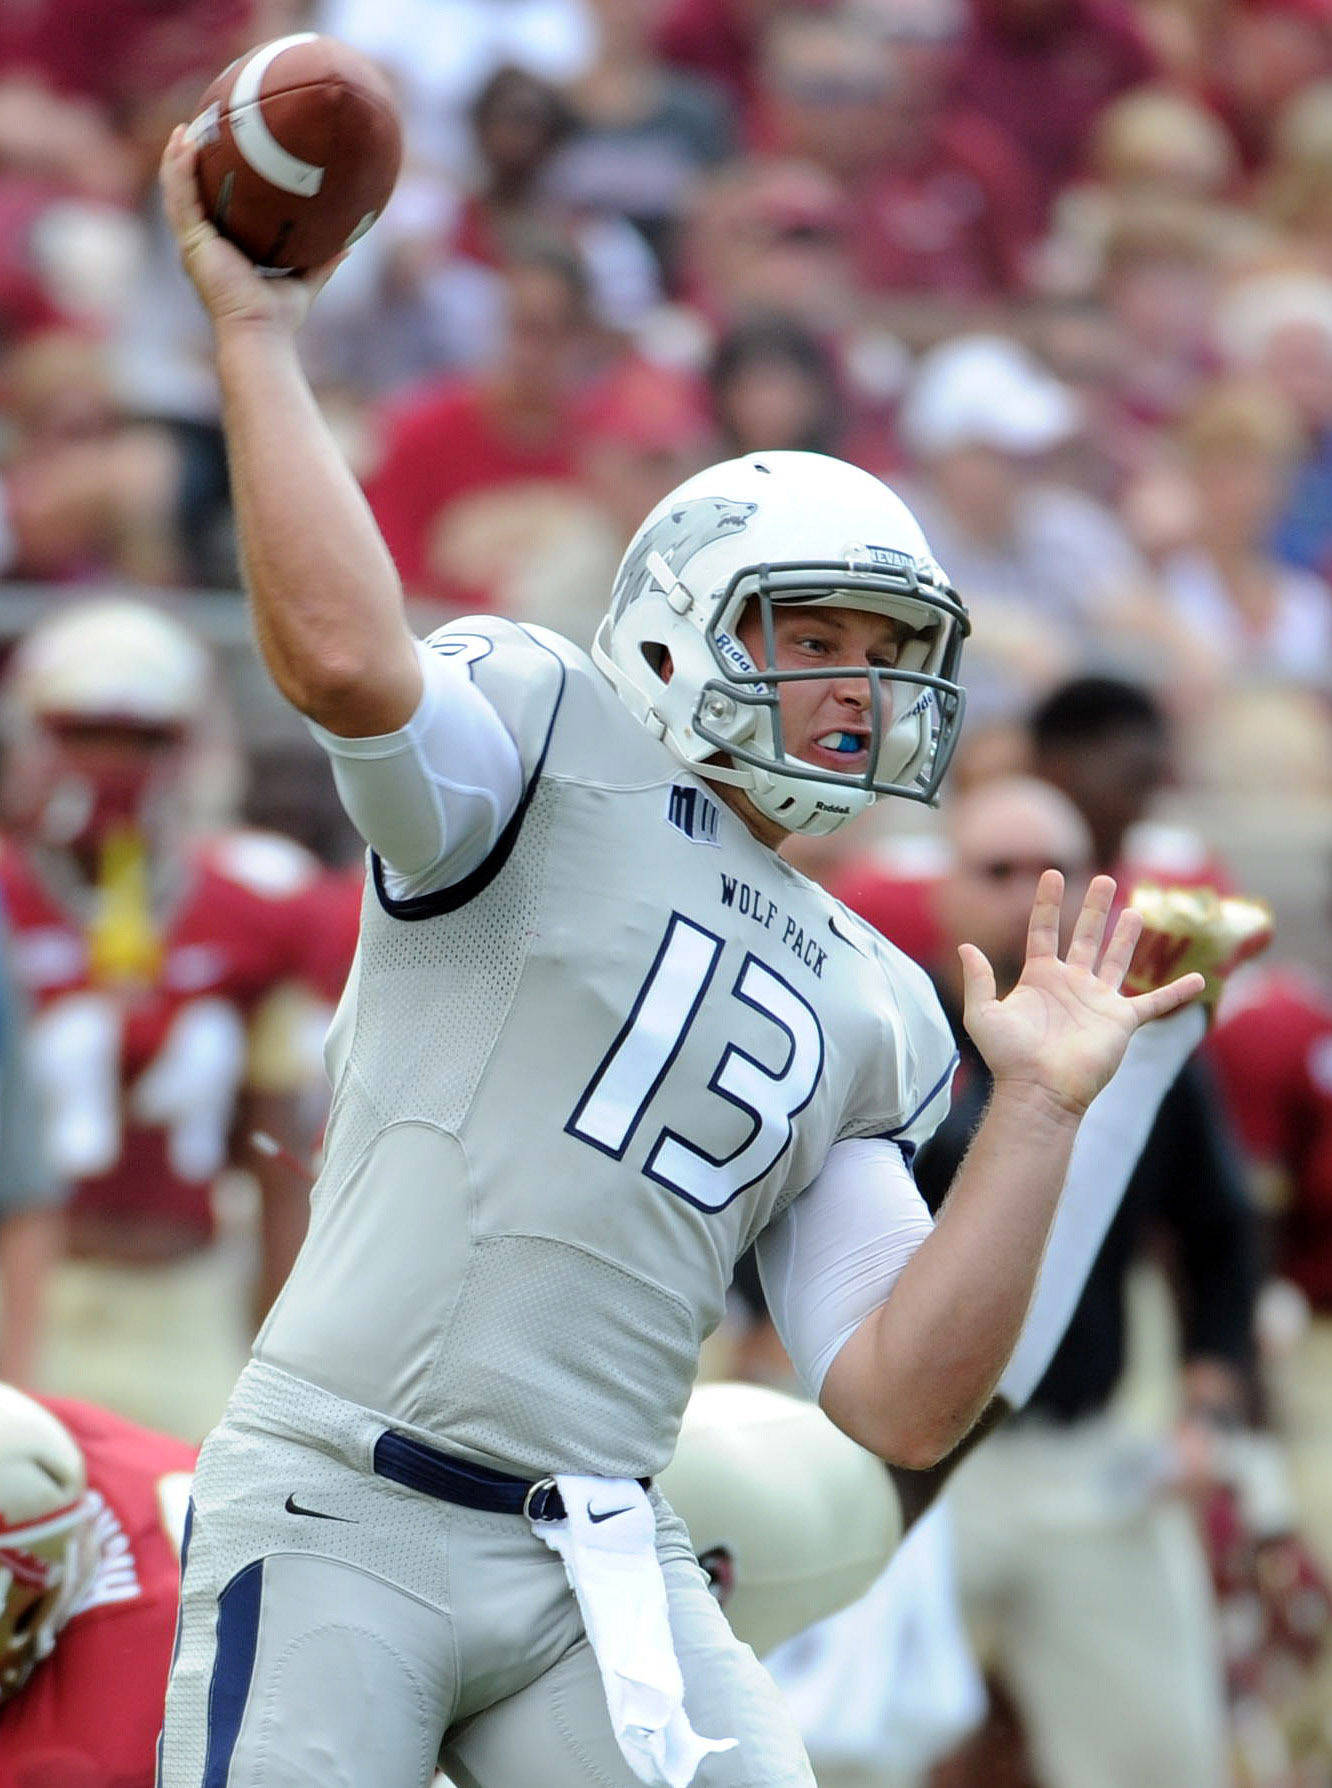 Sep 14, 2013; Tallahassee, FL, USA; Nevada Wolf Pack quarterback Devin Combs (13) throws the ball during the first half of the game against the Florida State Seminoles at Doak Campbell Stadium. Mandatory Credit: Melina Vastola-USA TODAY Sports